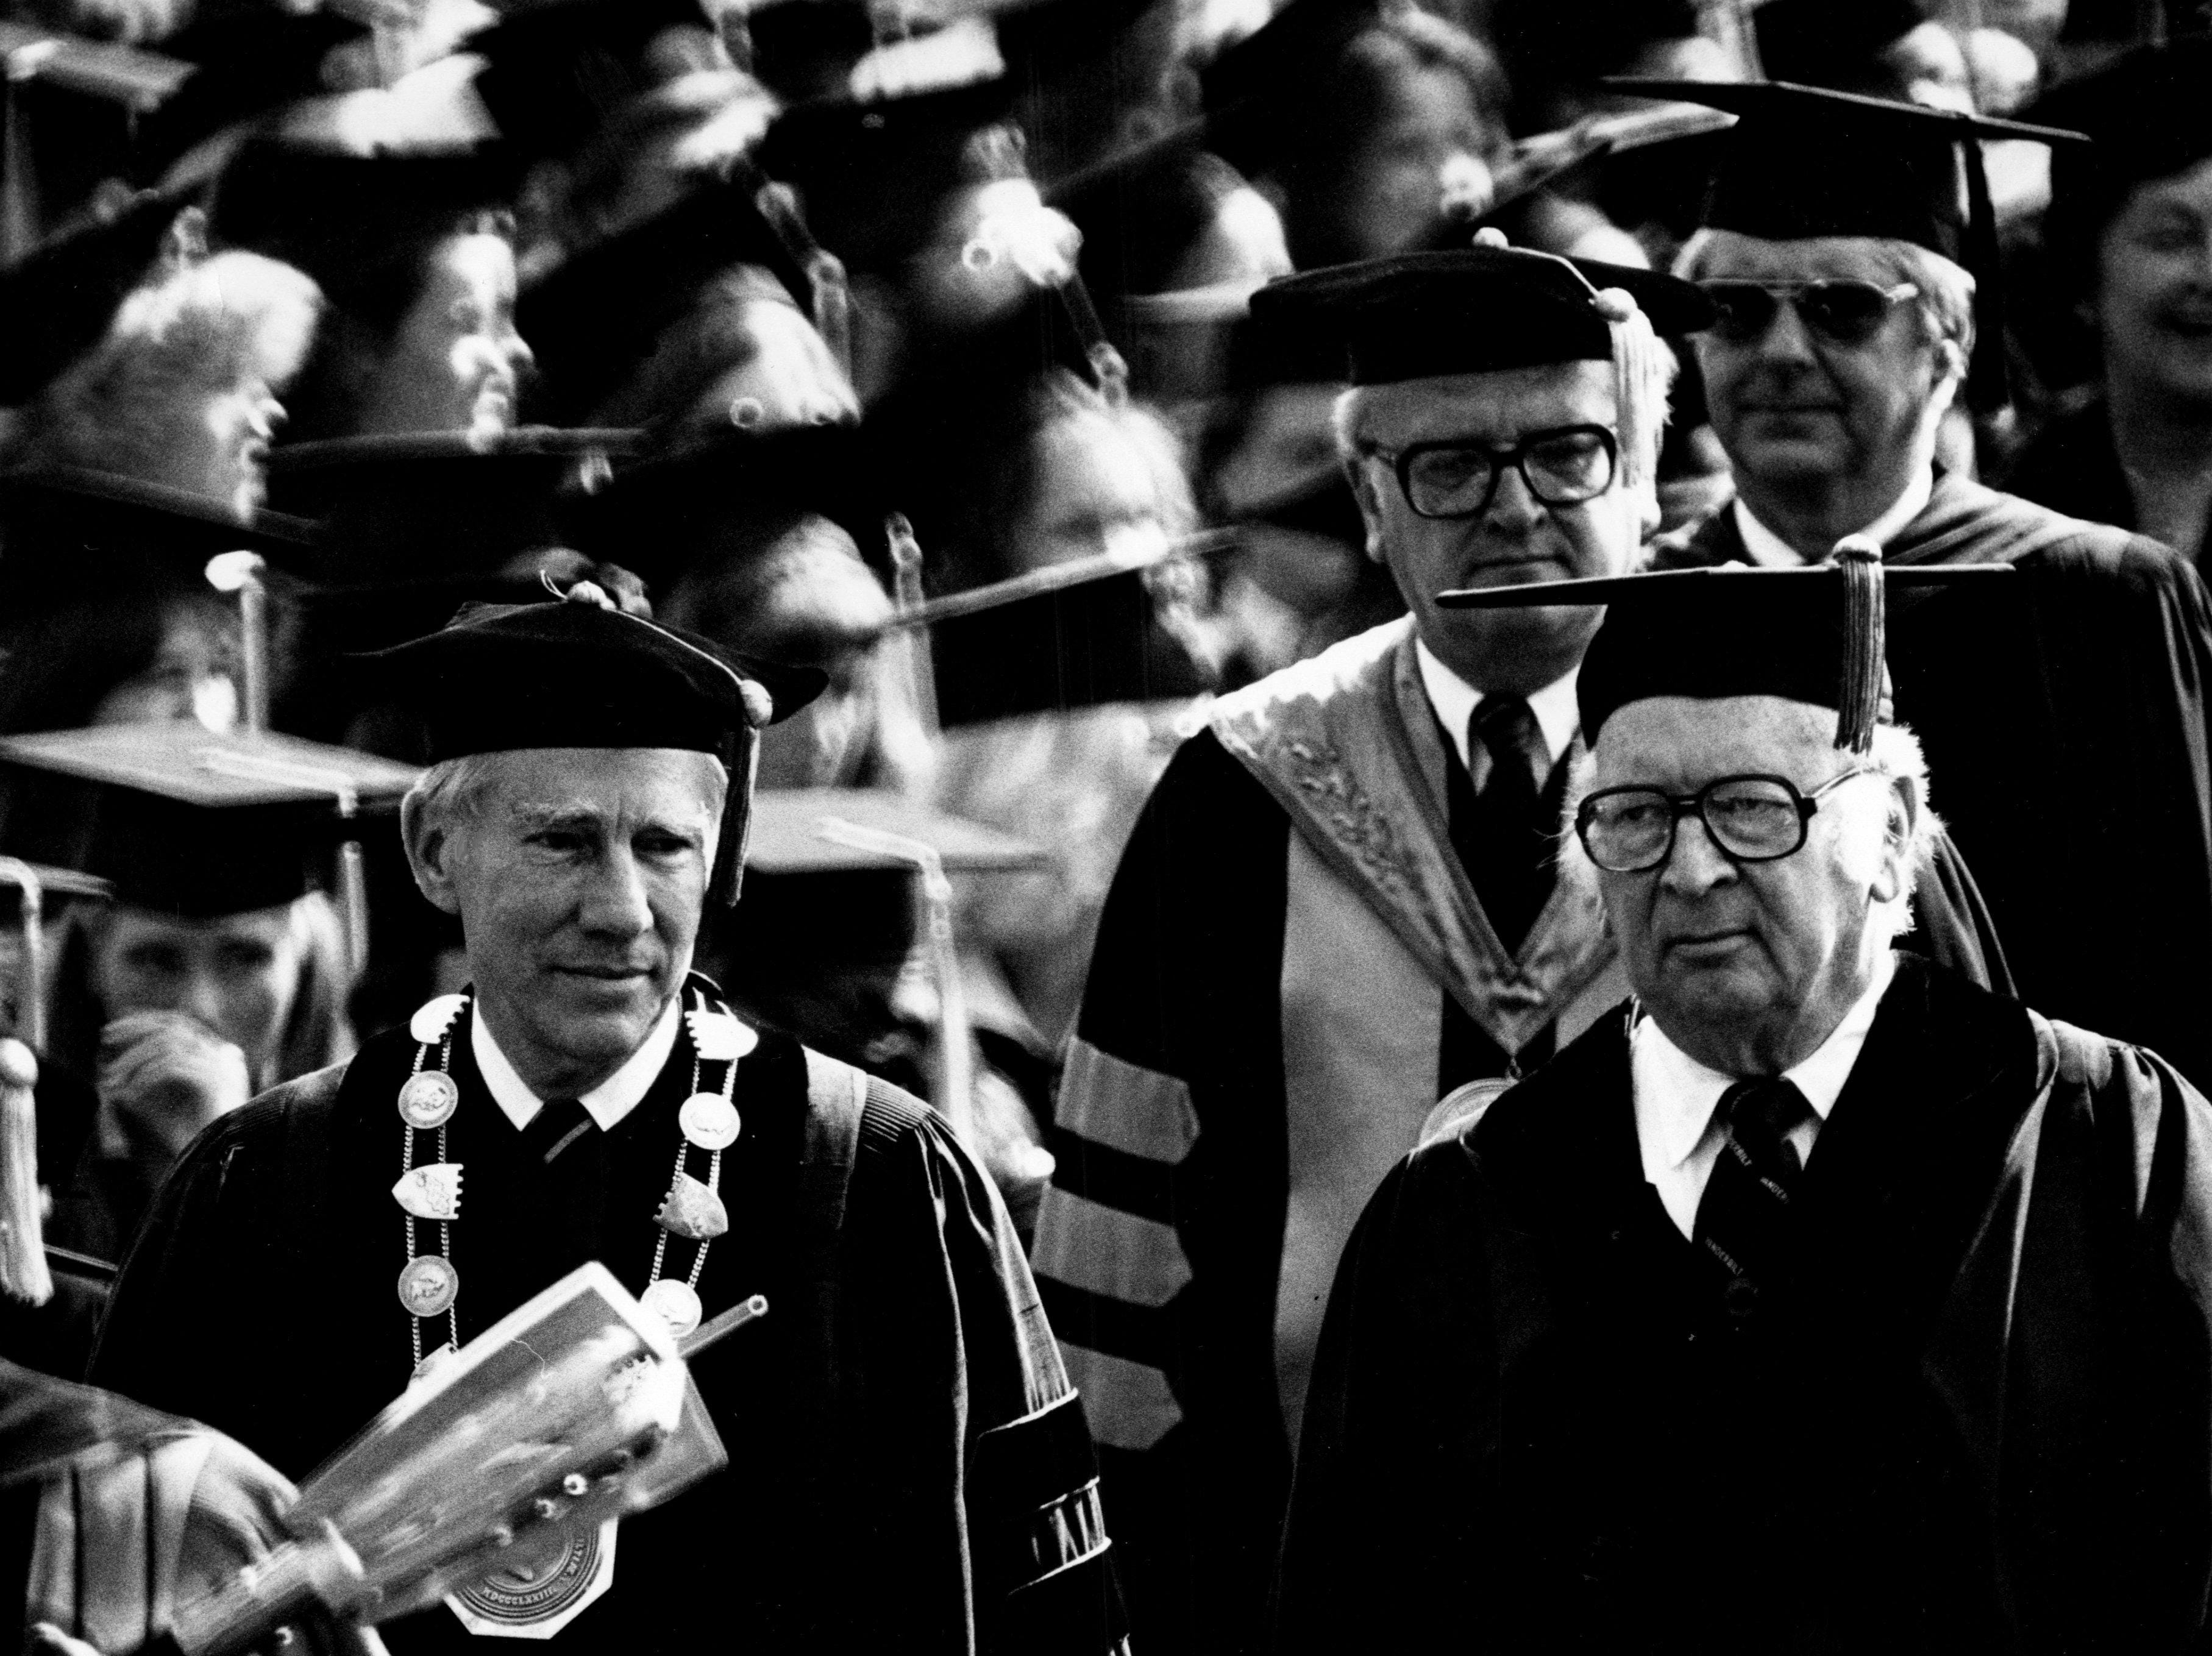 Alexander Heard, left, accompanied by David K. Wilson, chairman of the Vanderbilt University board of trust, and followed in procession by President Emmett B. Fields, marches toward his final commencement exercises as Vanderbilt chancellor in 1982..